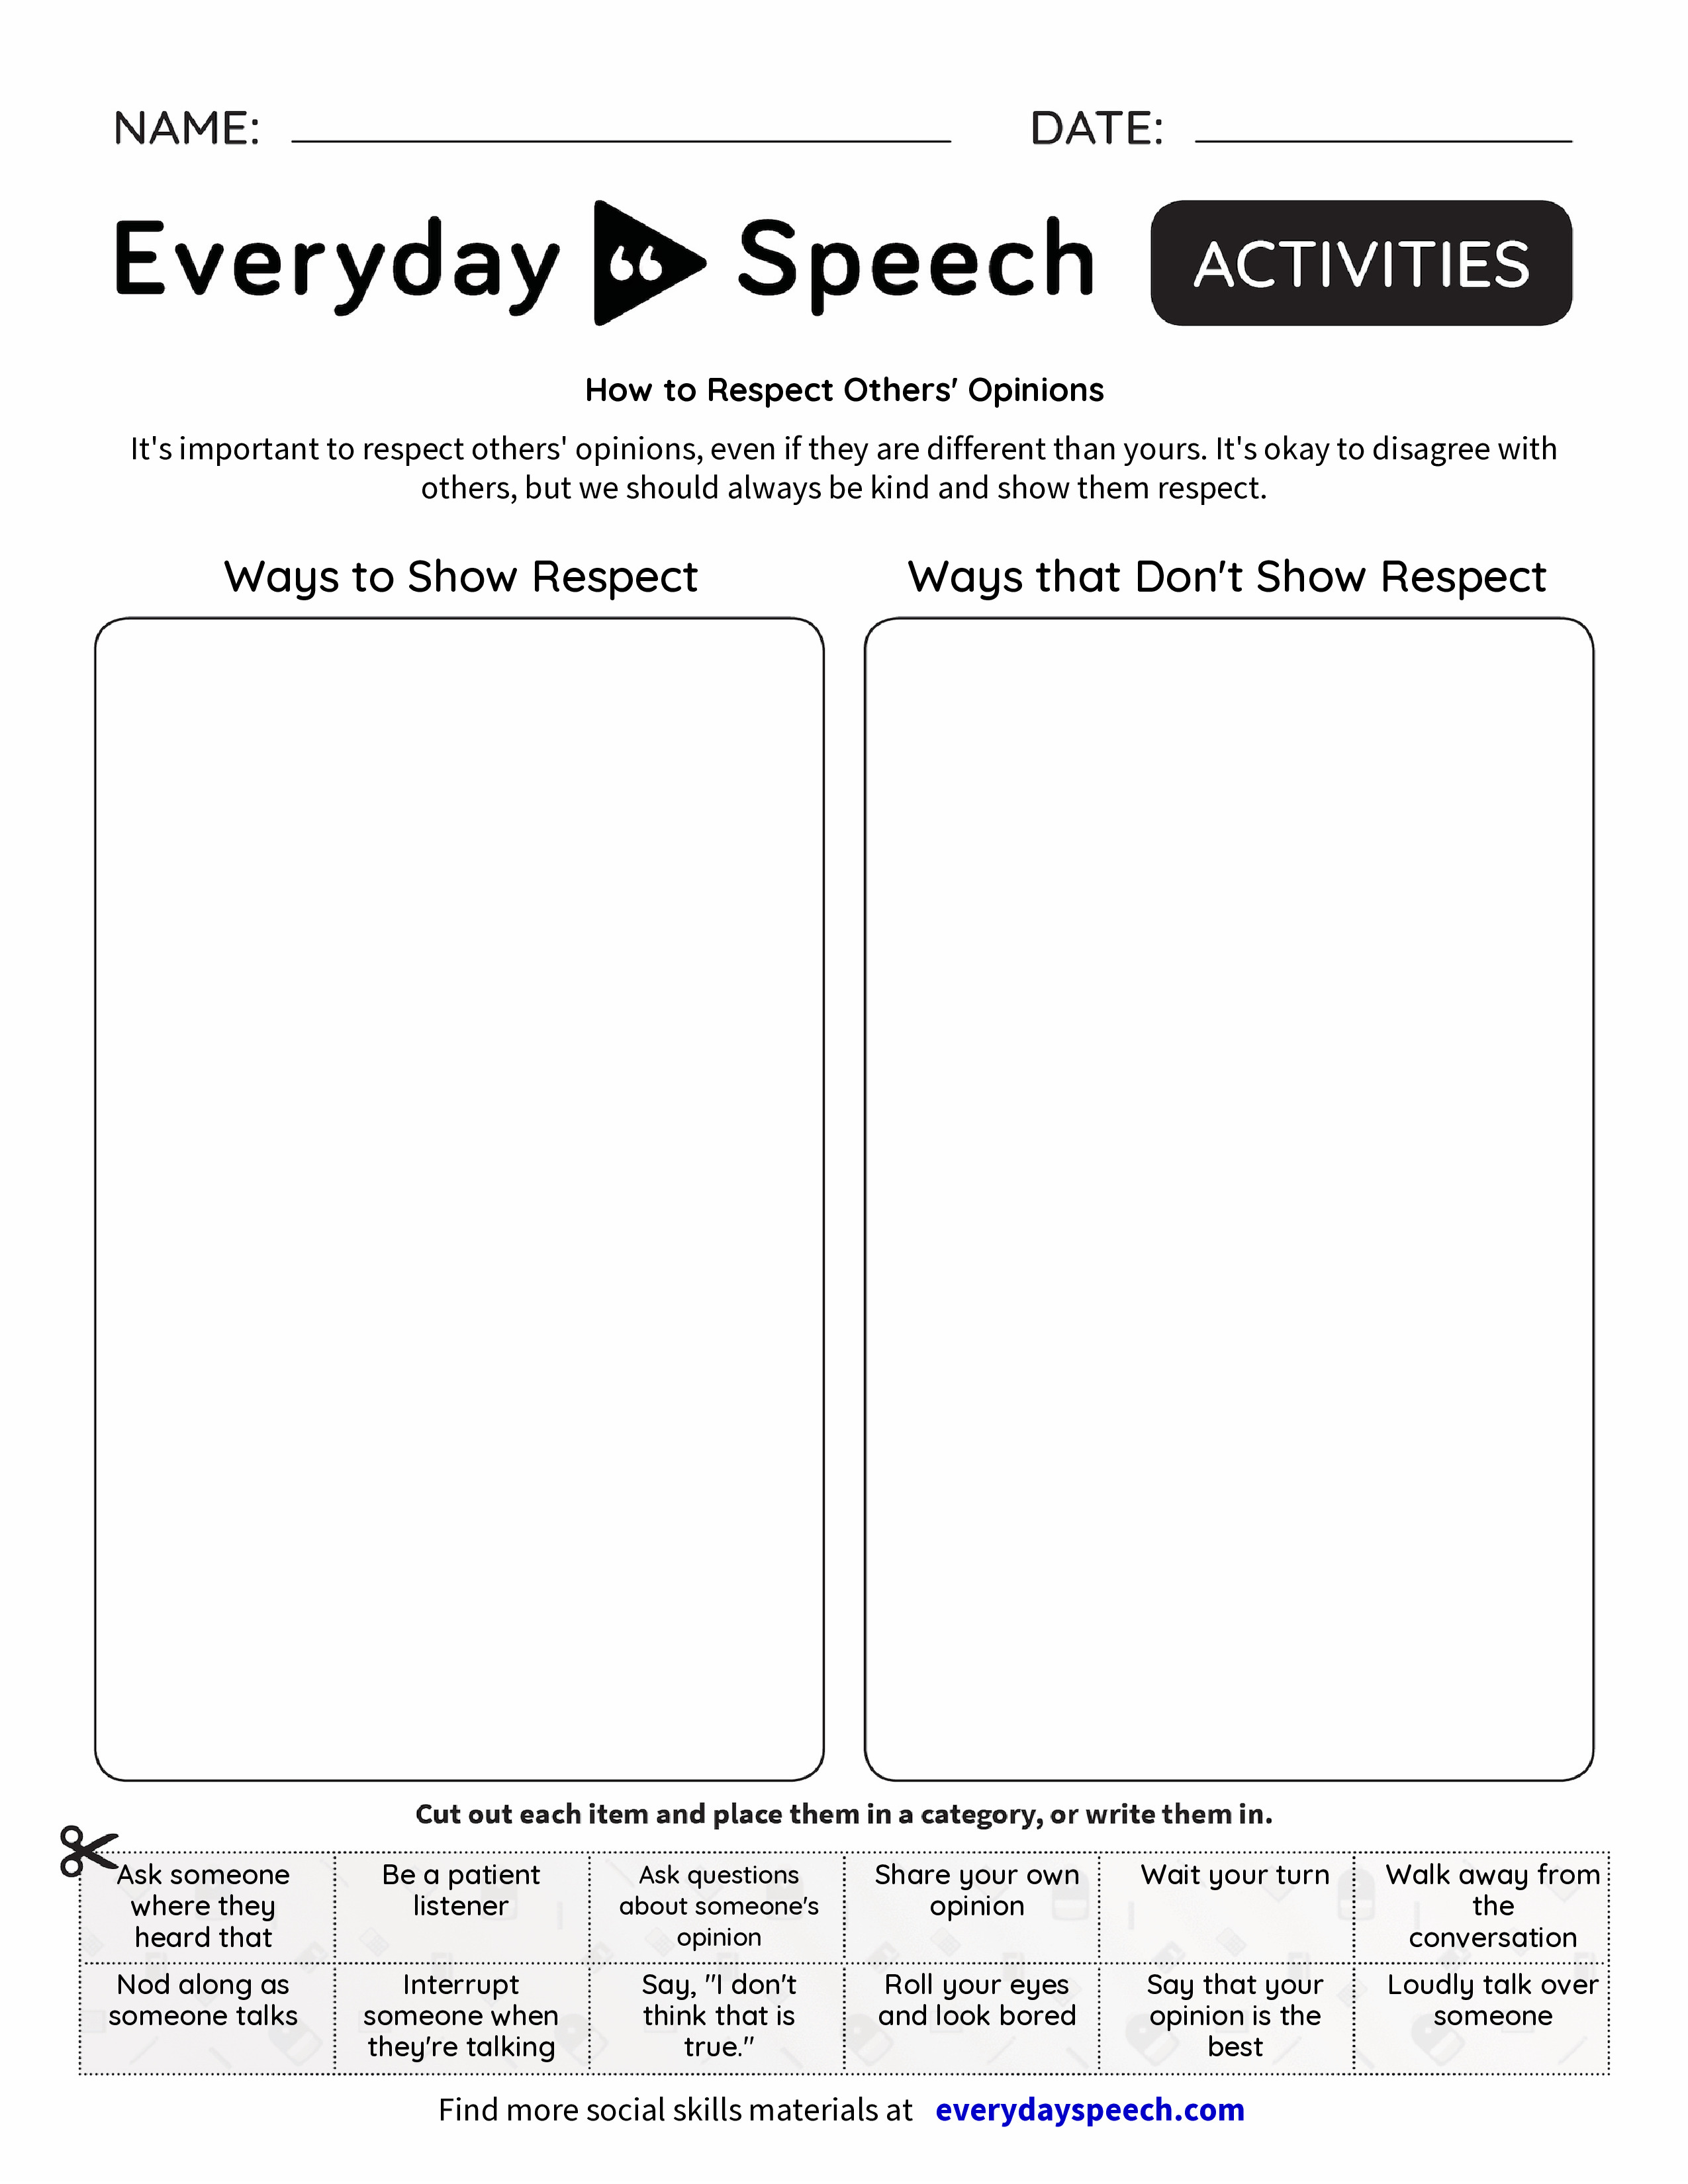 How to Respect Others' Opinions